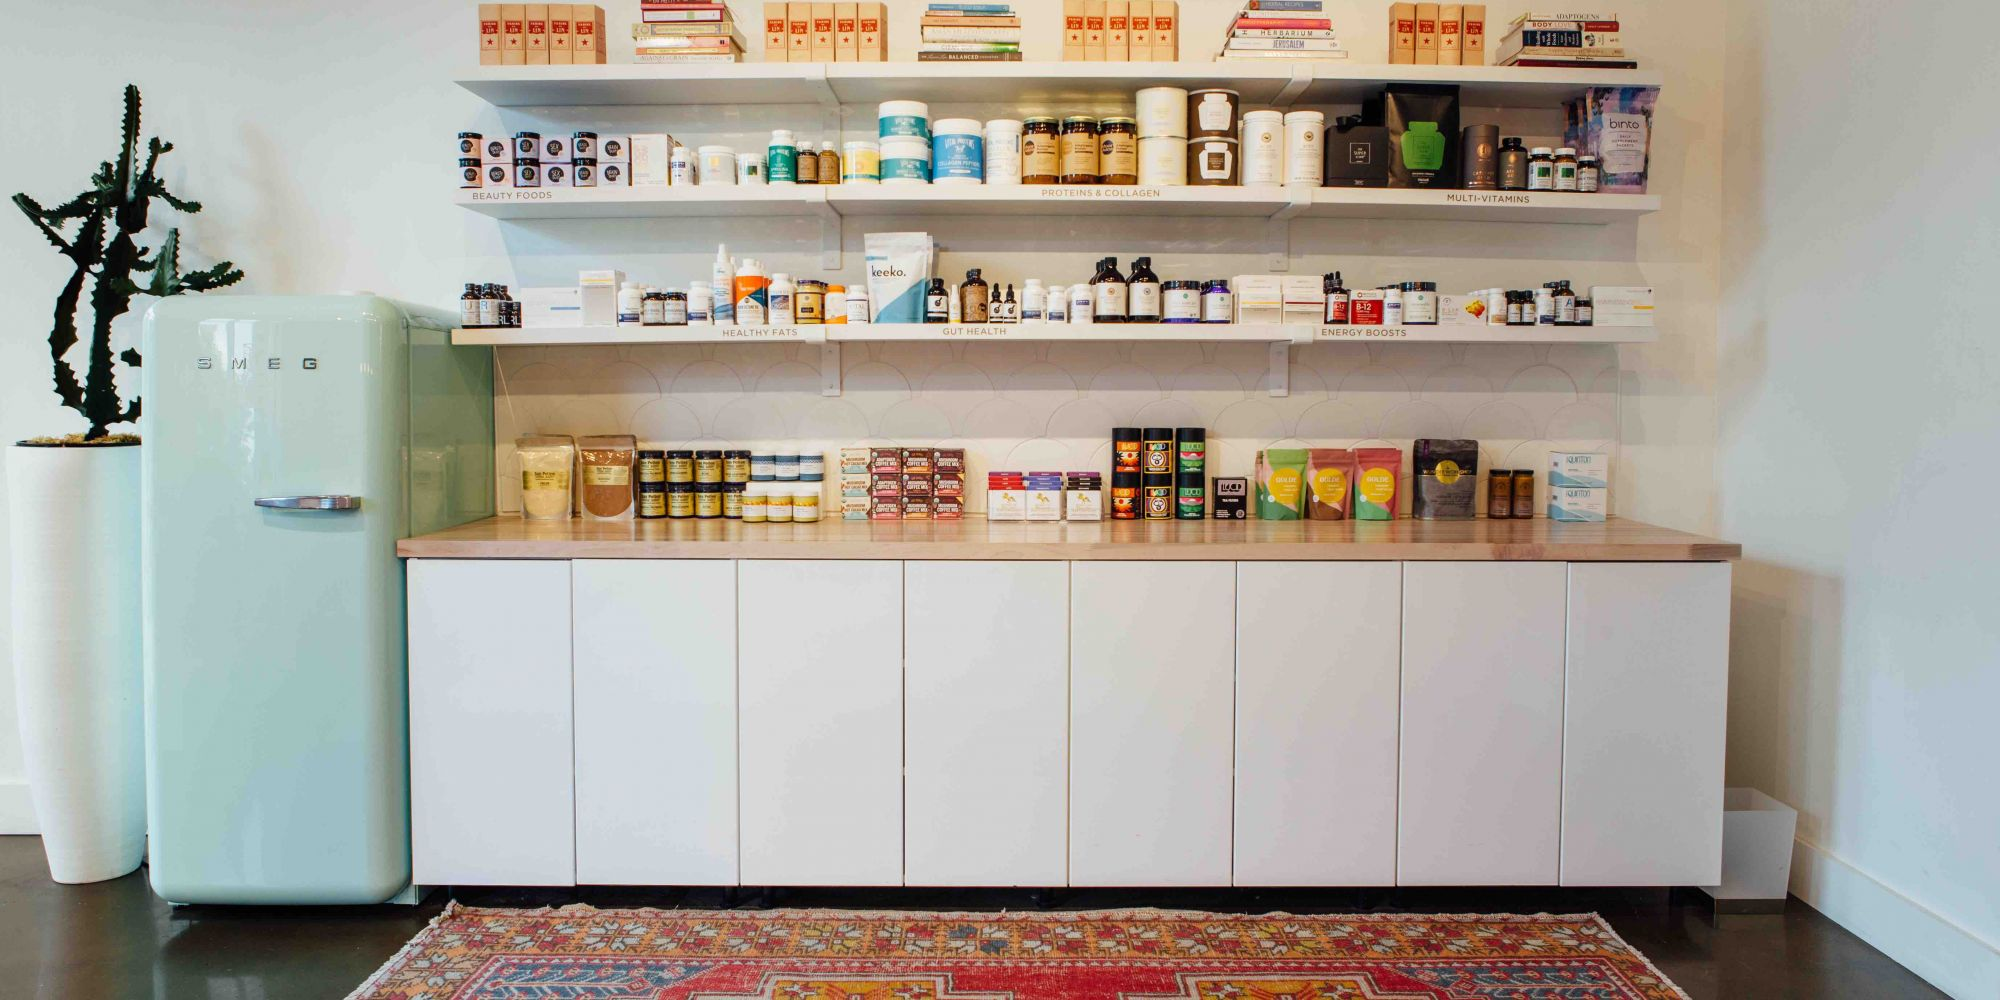 Lemon Laine Is Heading To Houston After Proving Its Natural Beauty And Wellness Retail Concept In Nashville